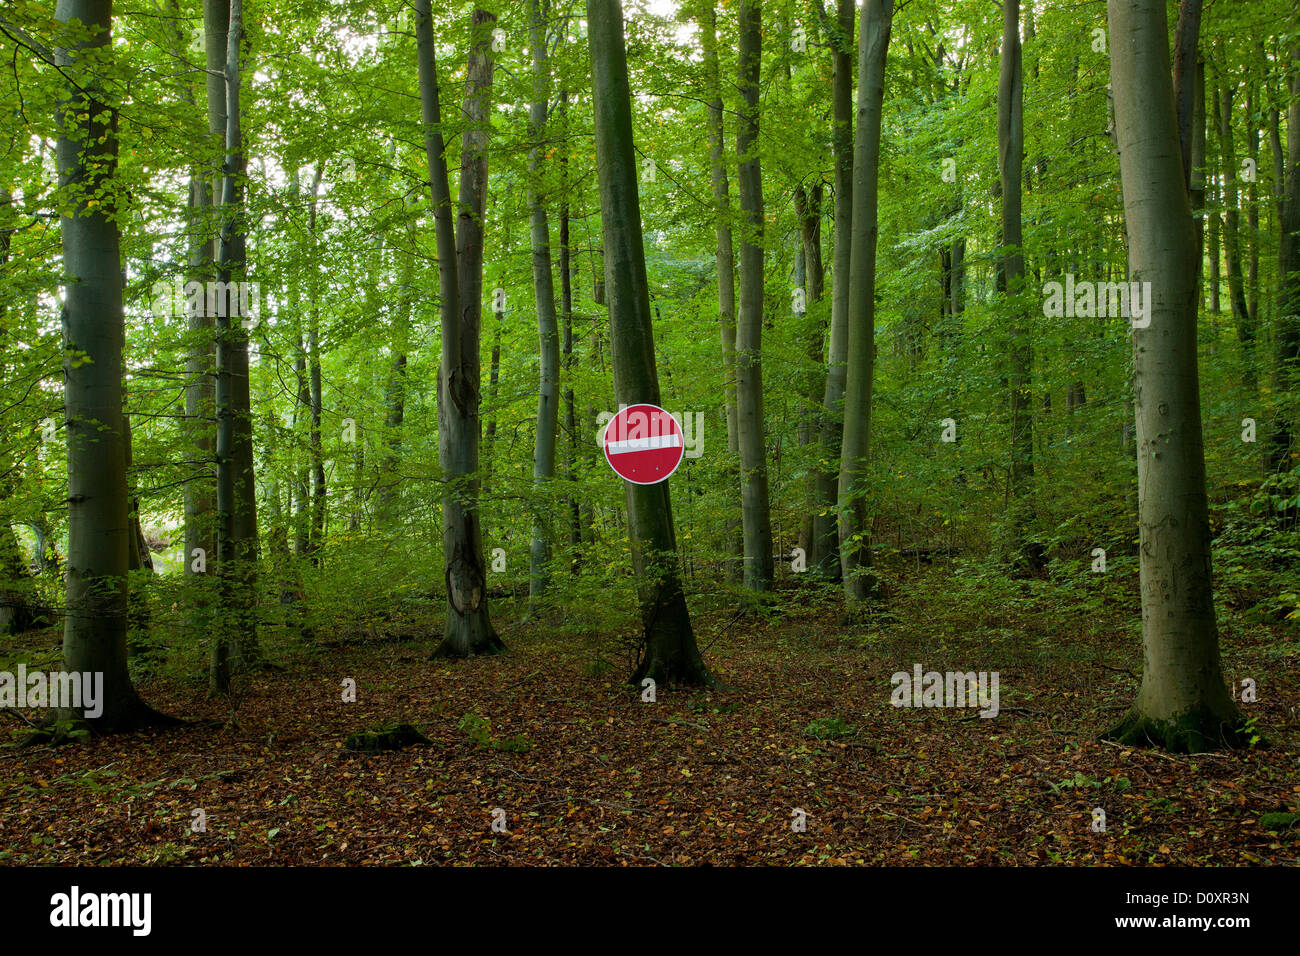 No Entry sign in a forest - Stock Image